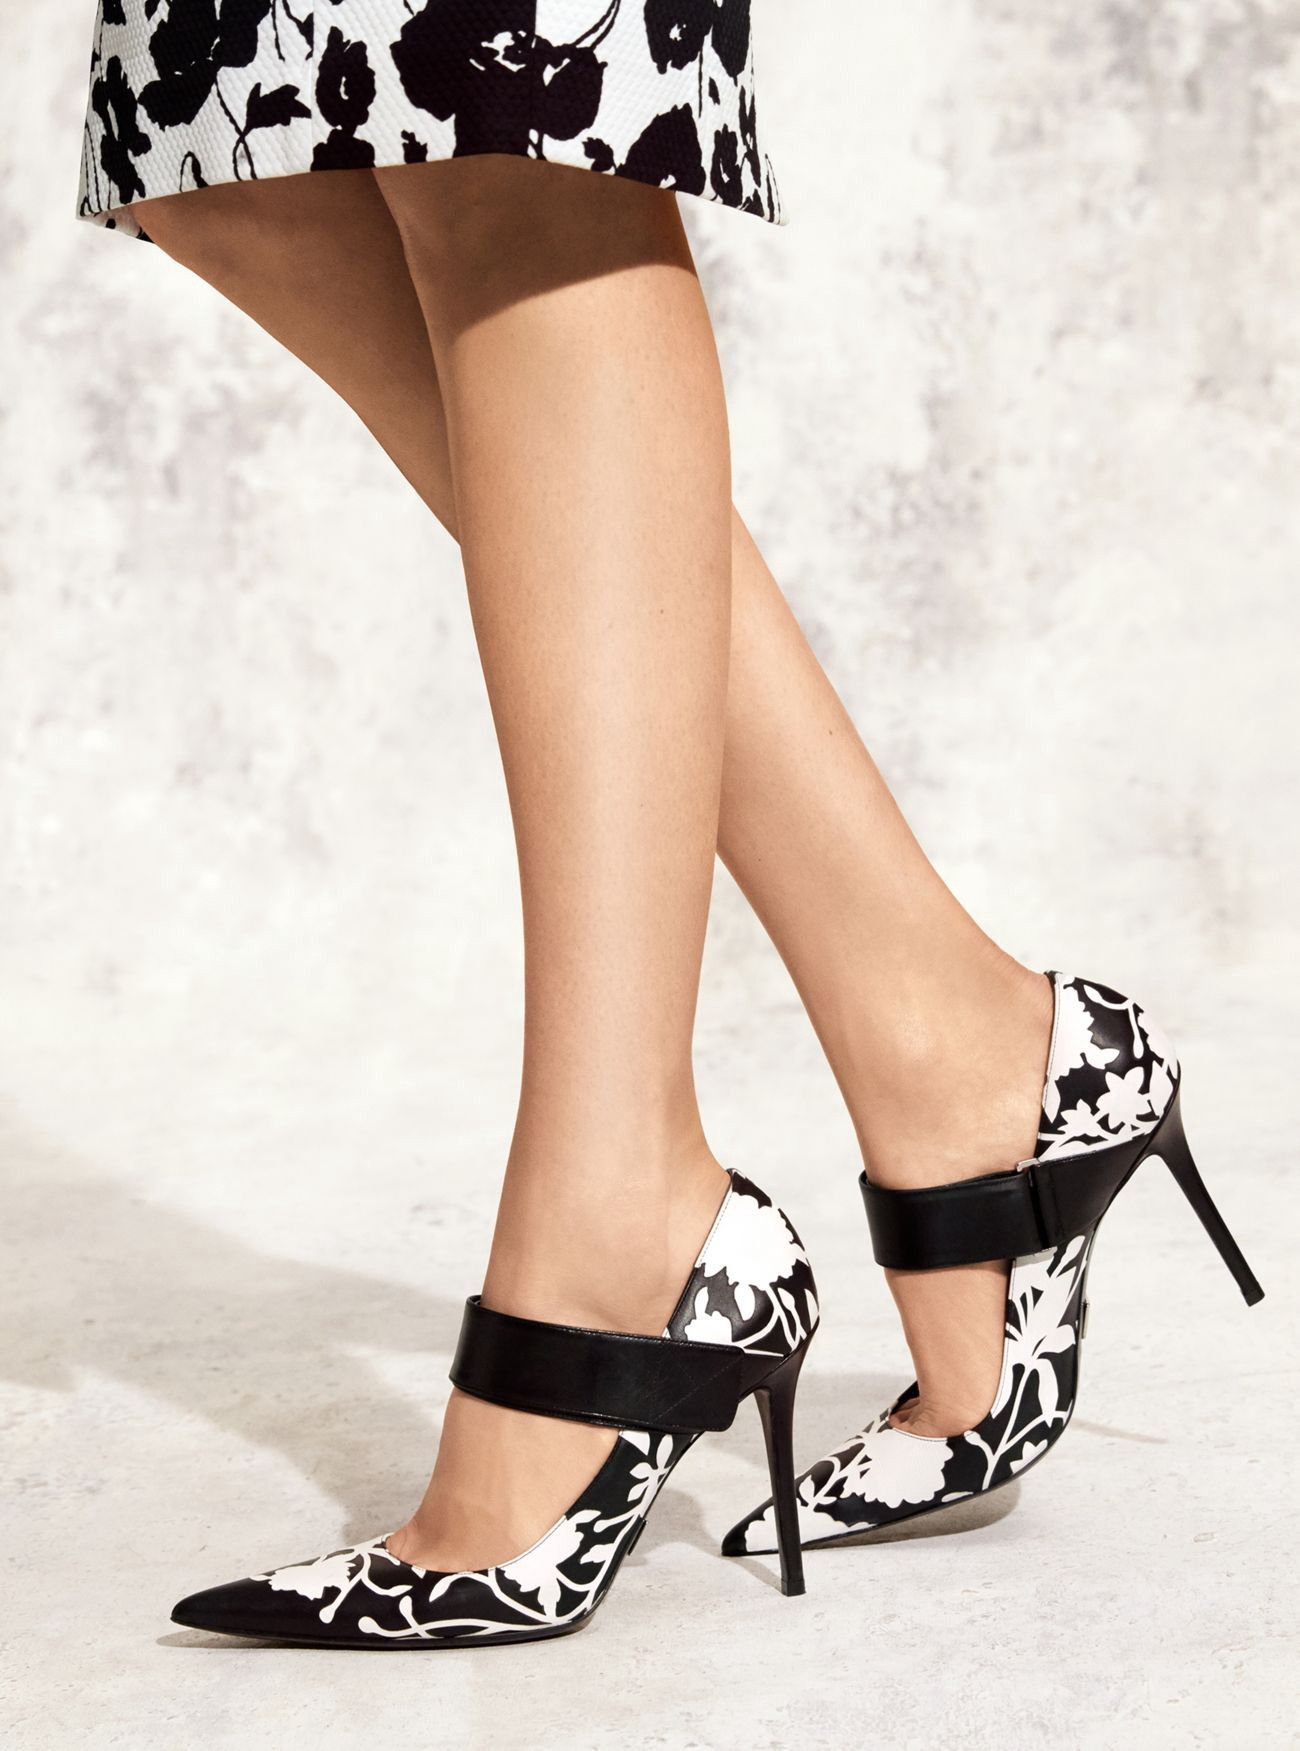 1808025baa8 Michael Kors Emile Floral Leather Pump - 39.5 | Products | Shoes ...